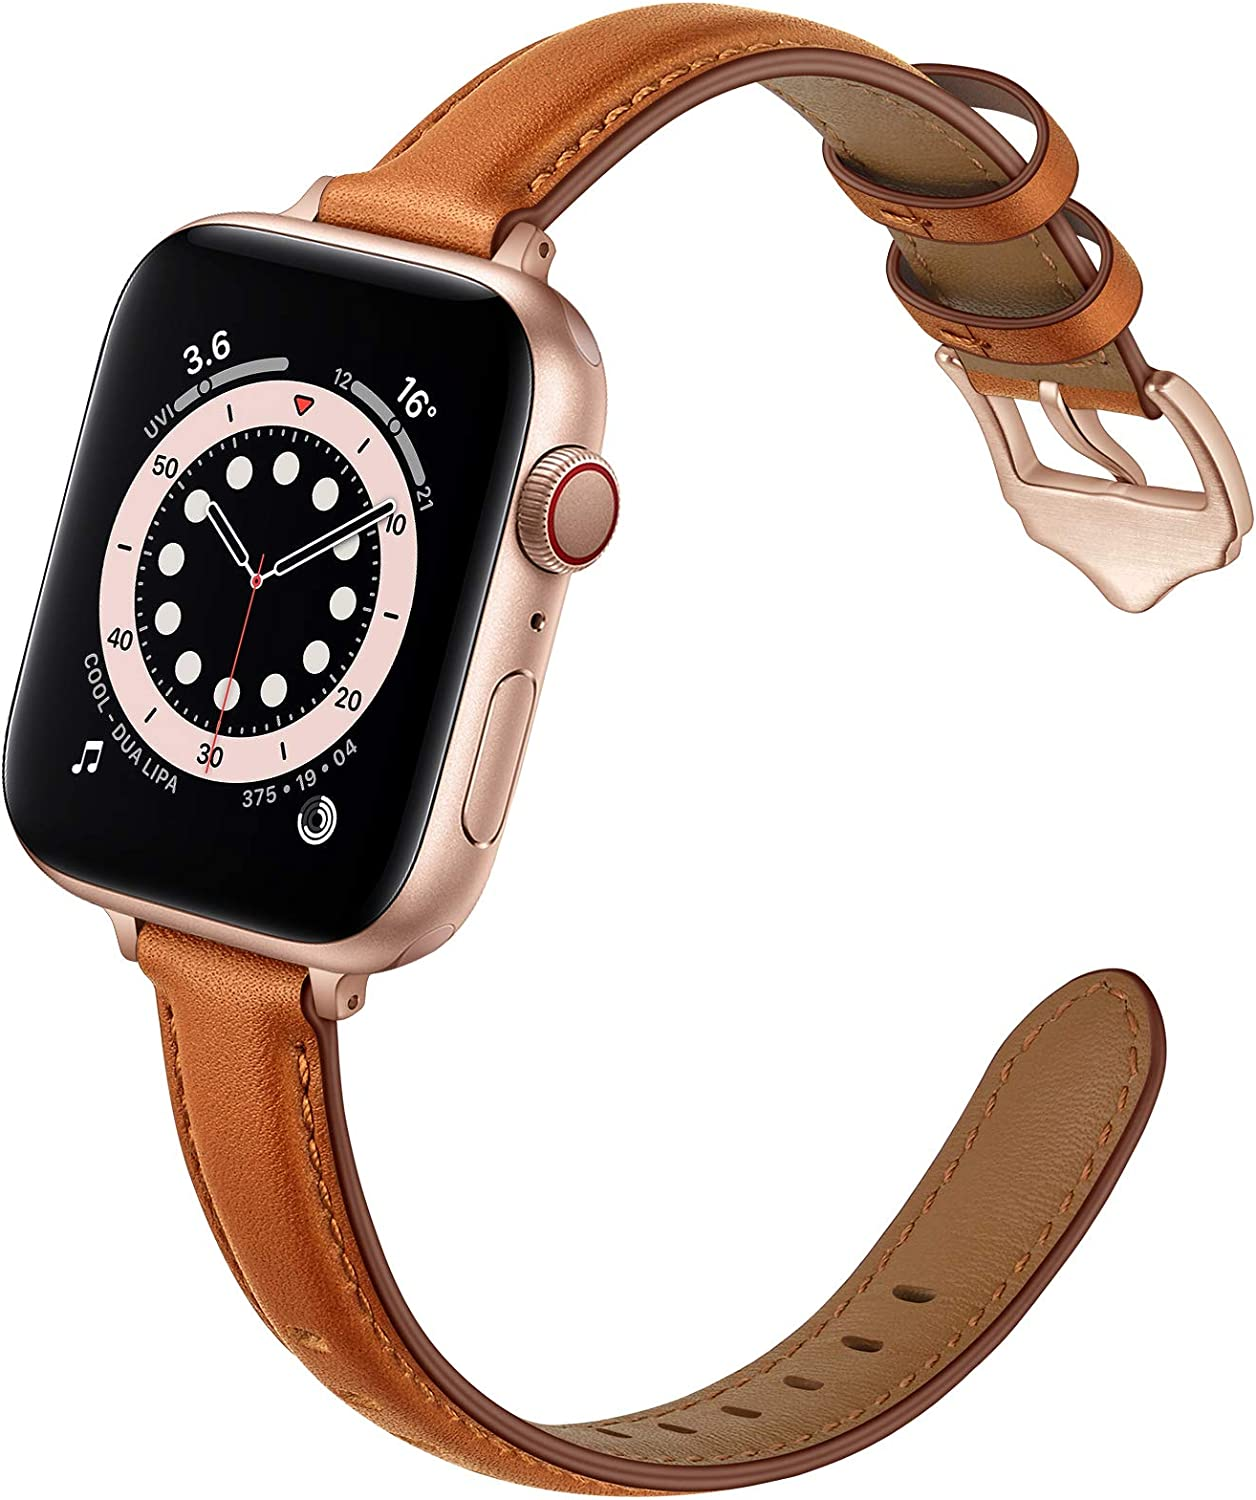 OUHENG Compatible with Apple Watch Bands 40mm 38mm 44mm 42mm, Women Slim Thin Genuine Leather Replacement Strap for iWatch SE Series 6 5 4 3 2 1 (Brown/Rose Gold, 40mm 38mm)